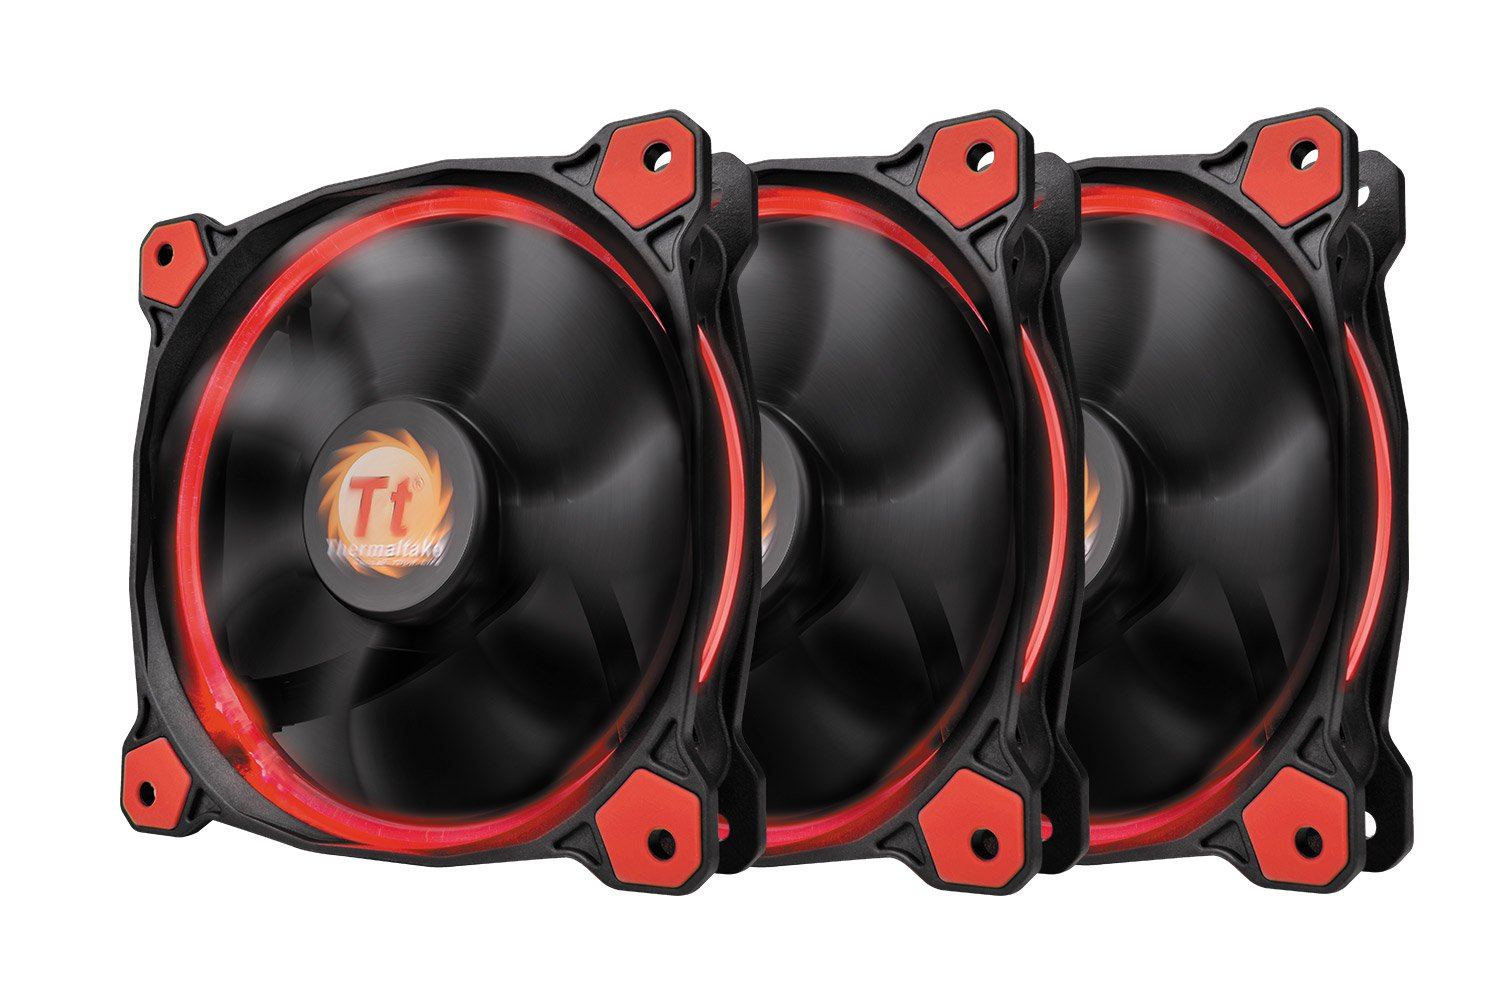 Thermaltake Riing 12 High Static Pressure Circular Ring Red LED Case/Radiator Fan with Anti-Vibration Mounting System Triple Pack Cooling CL-F055-PL12RE-A